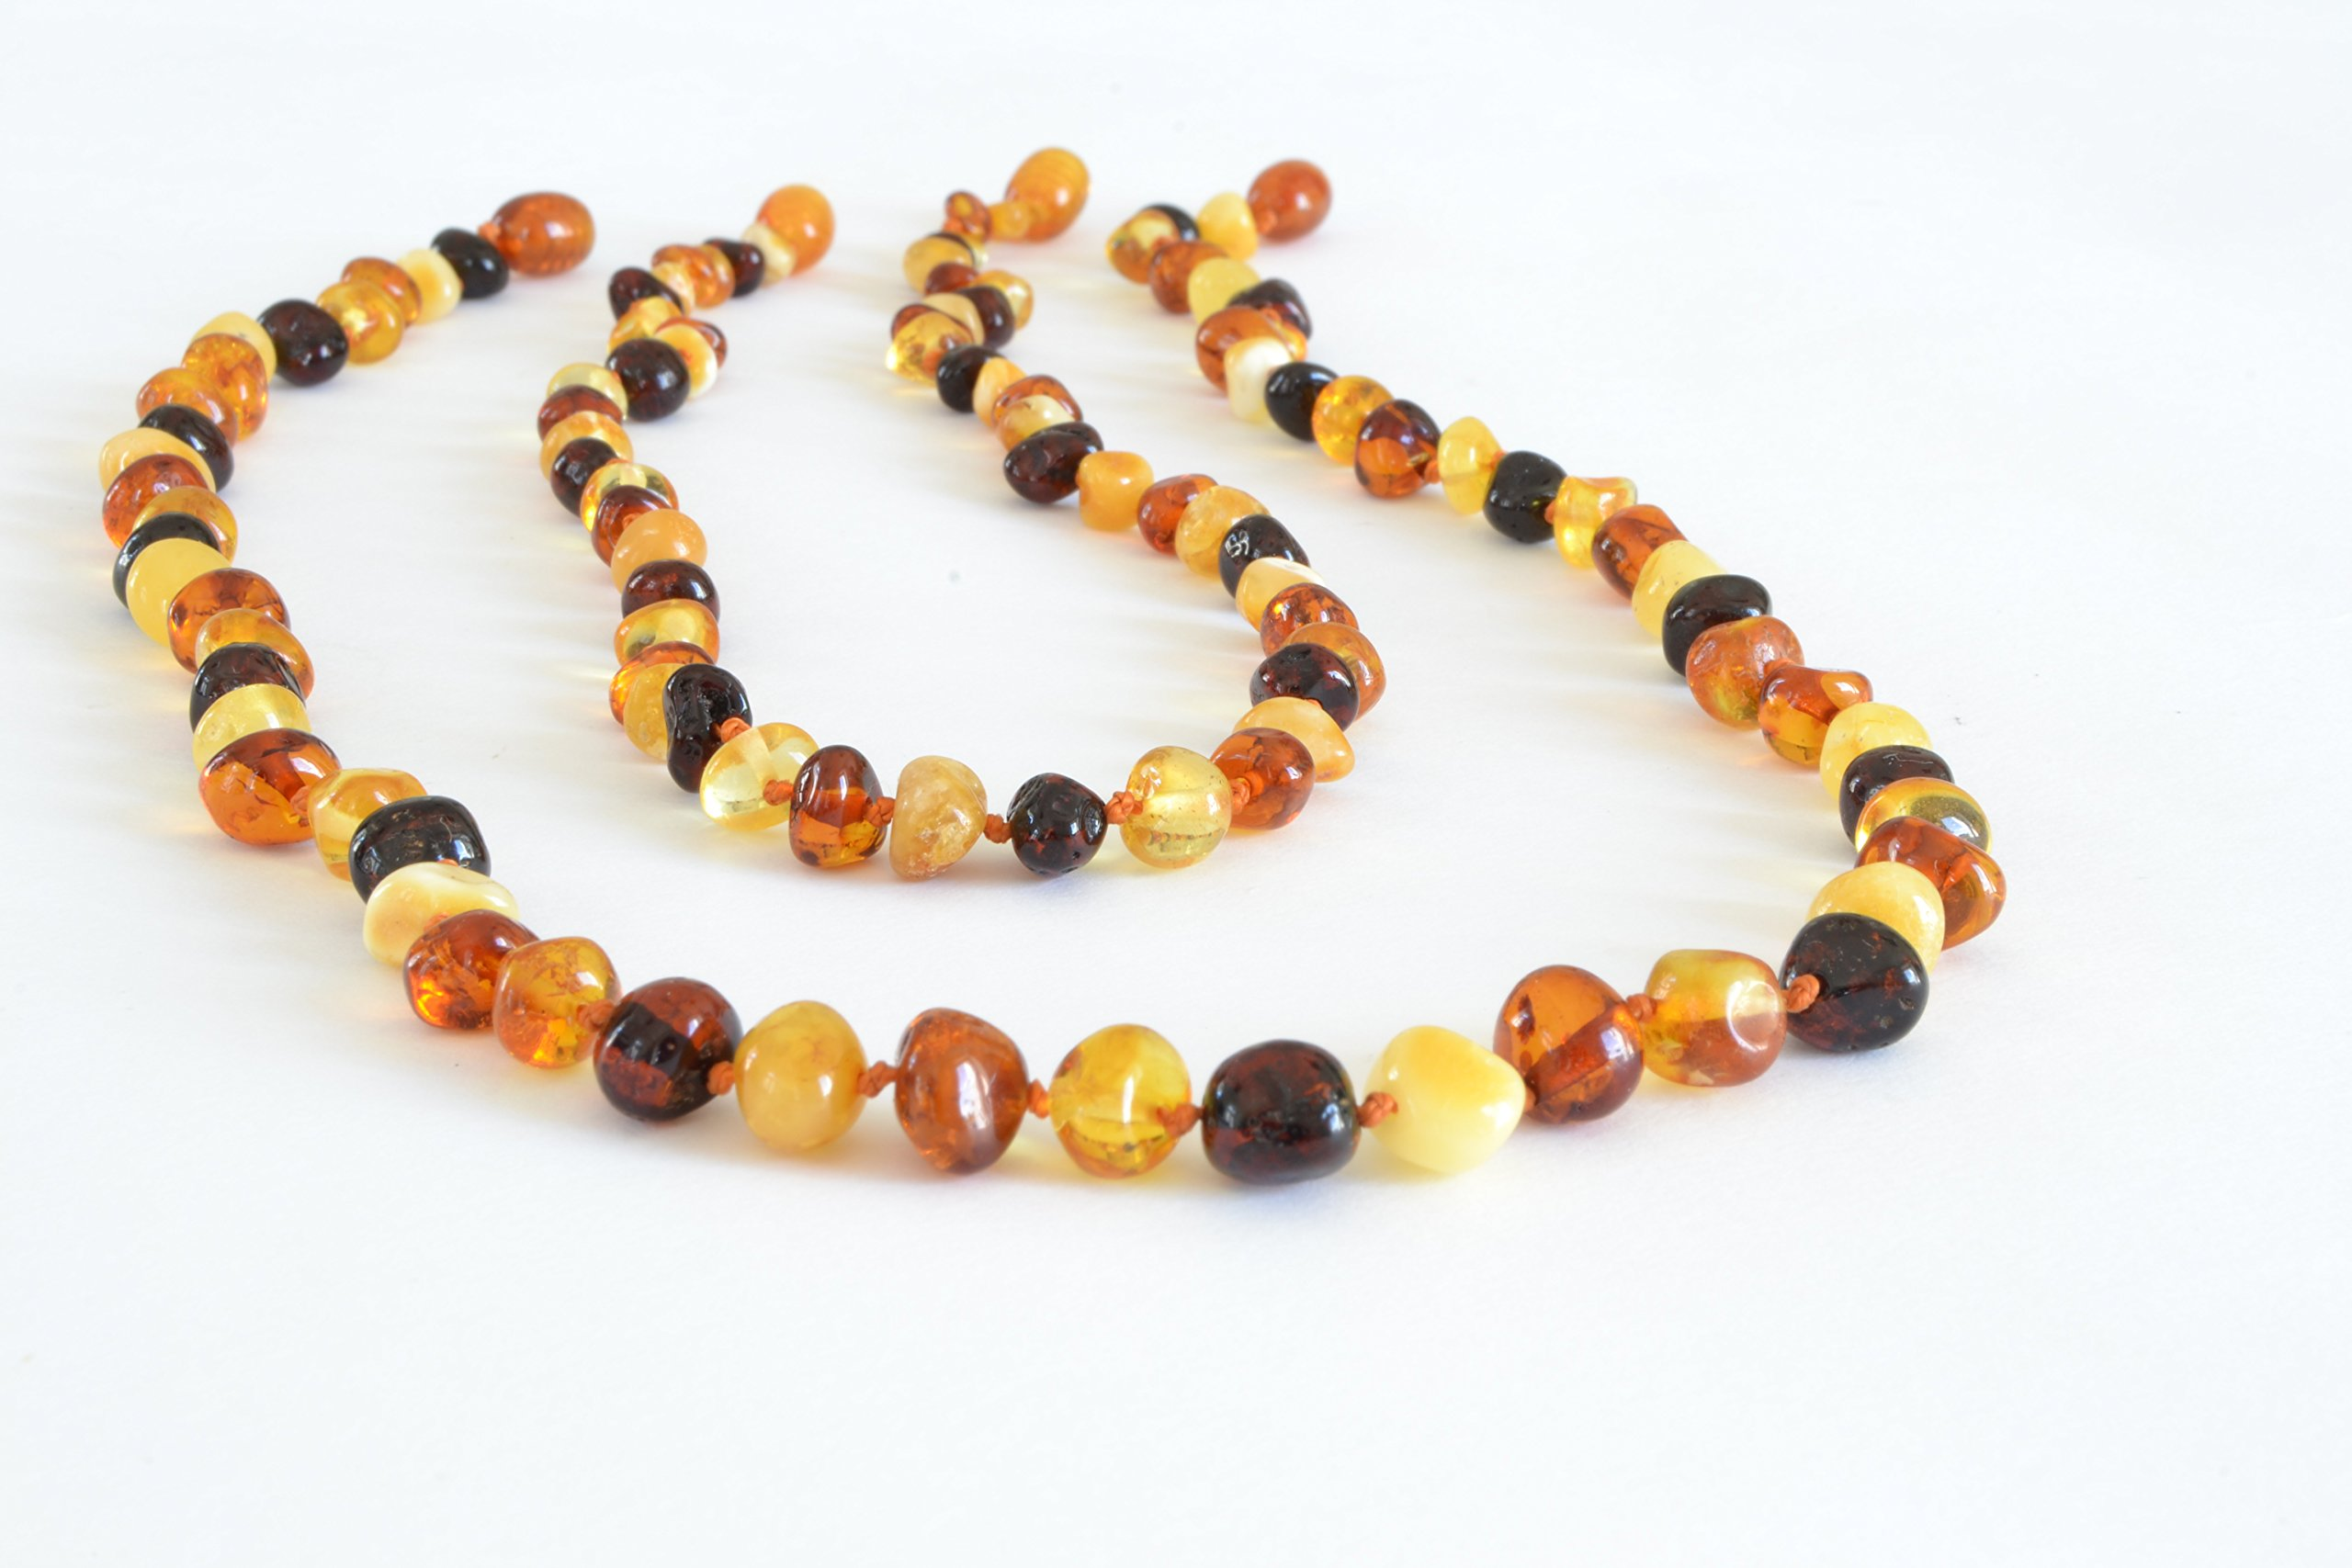 The Art of Cure Original Baltic Amber Necklace set for Mom & Child - Polished Handmade (MULTICOLORED) Unisex - 17in & 12.5 Inches by The Art of Cure